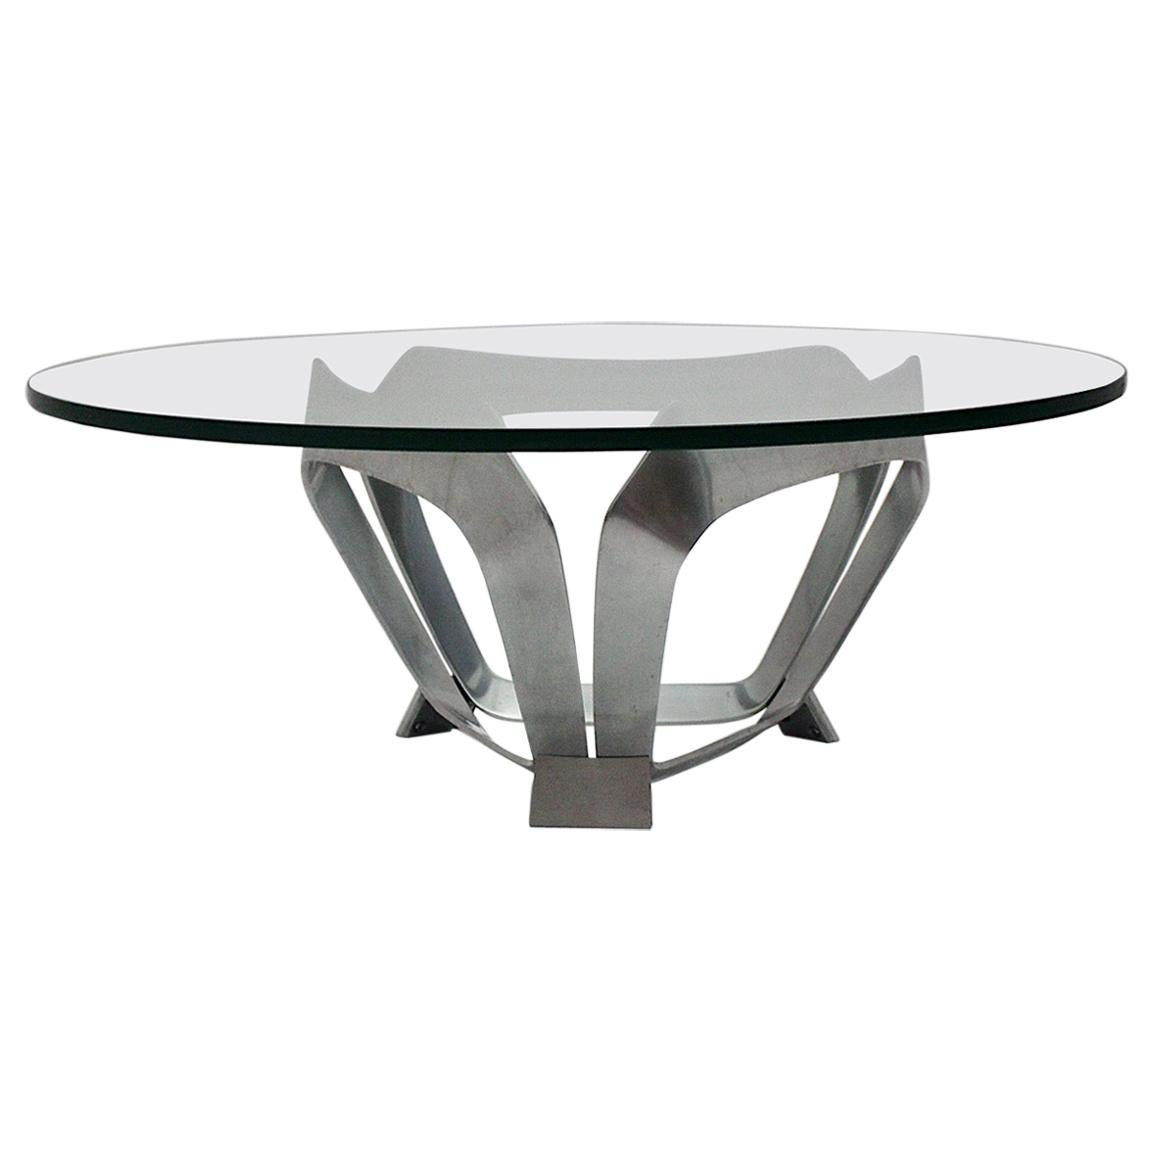 Aluminum Glass Space Age Vintage Coffee Table by Knut Hesterberg 1960s Germany